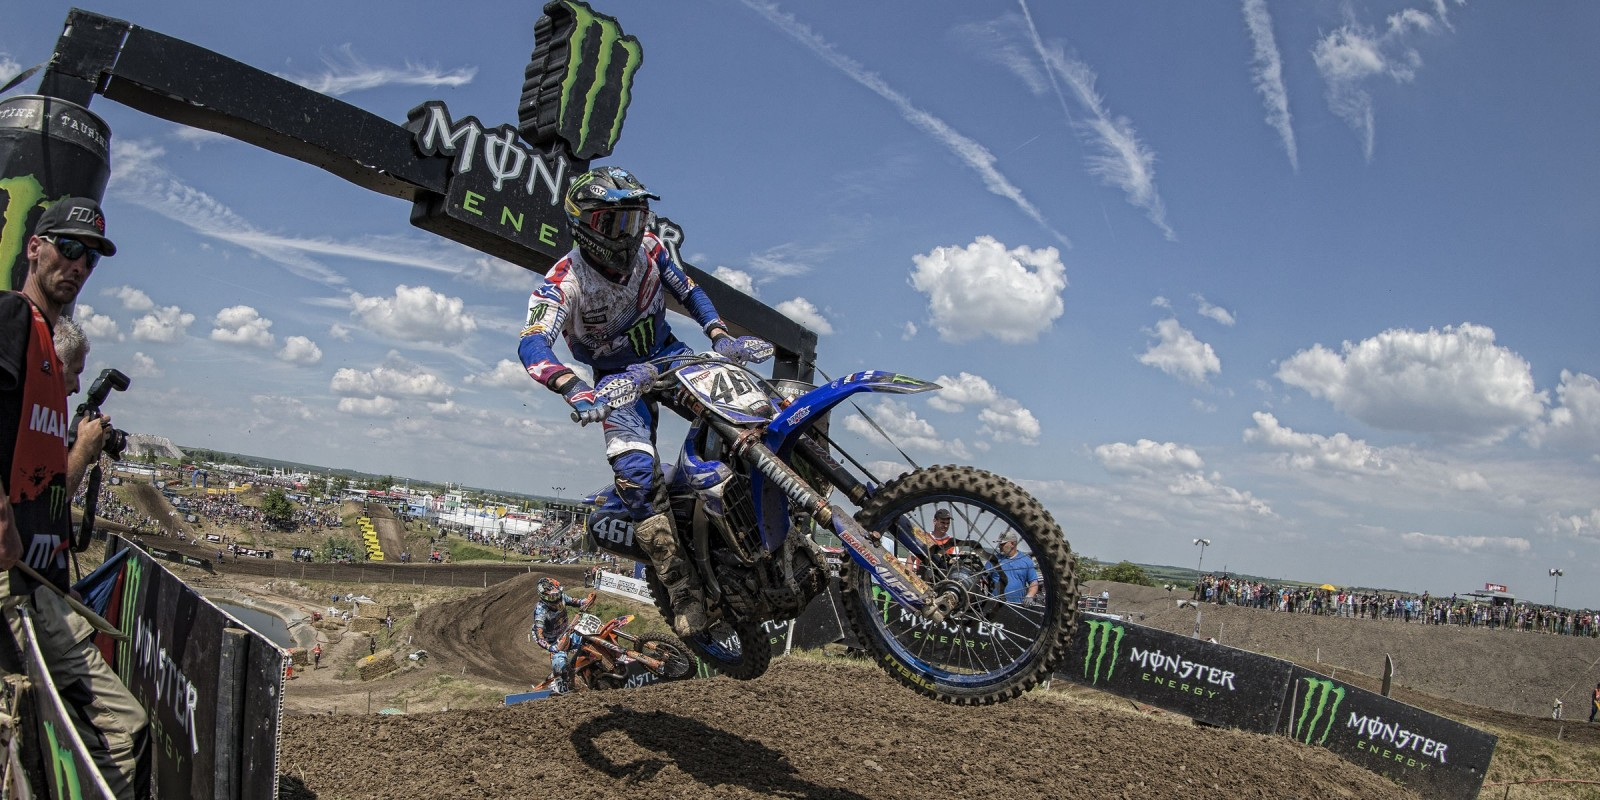 Romain Febvre at the 2017 Grand Prix of Germany